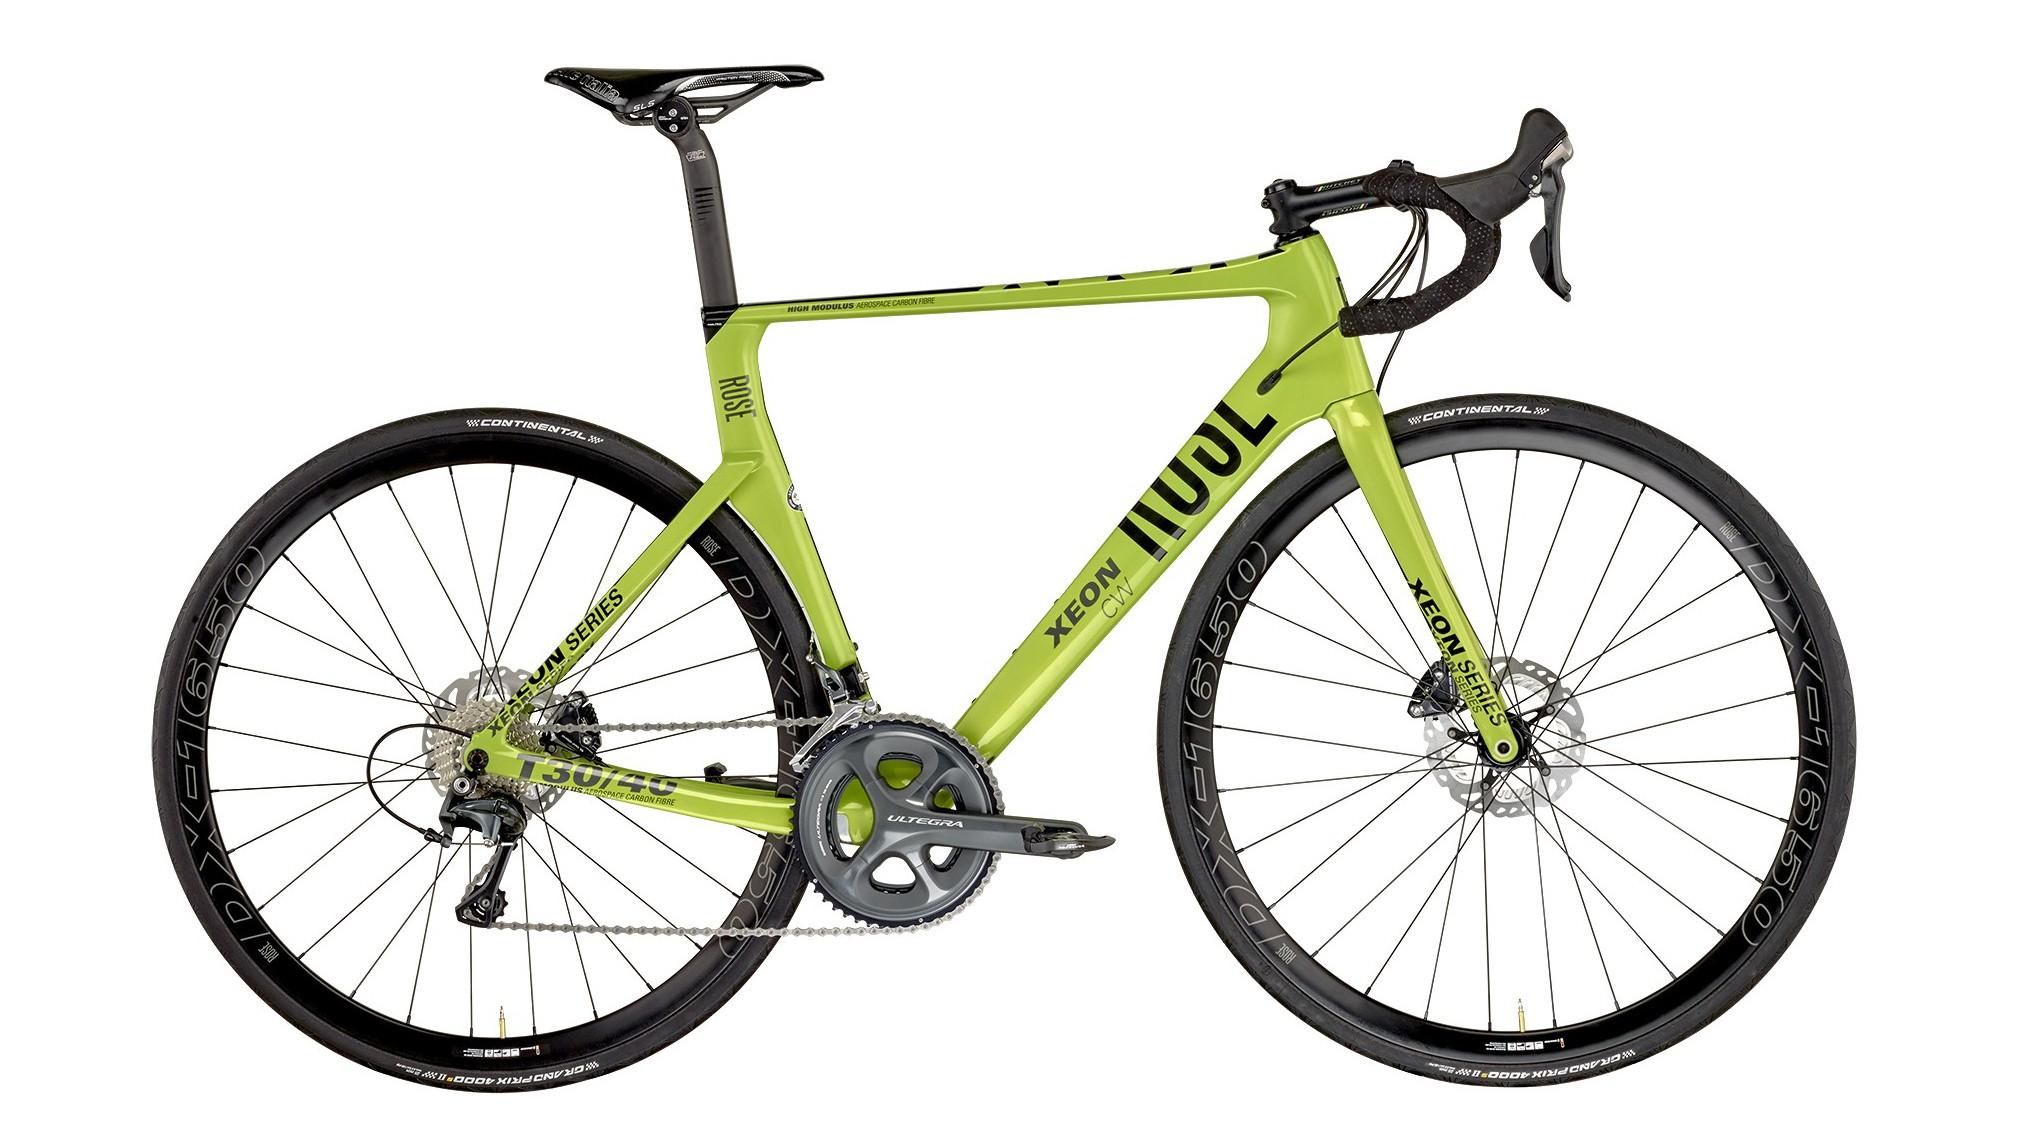 The Rose Xeon CWX-3000 is an eye-catching and capable bike